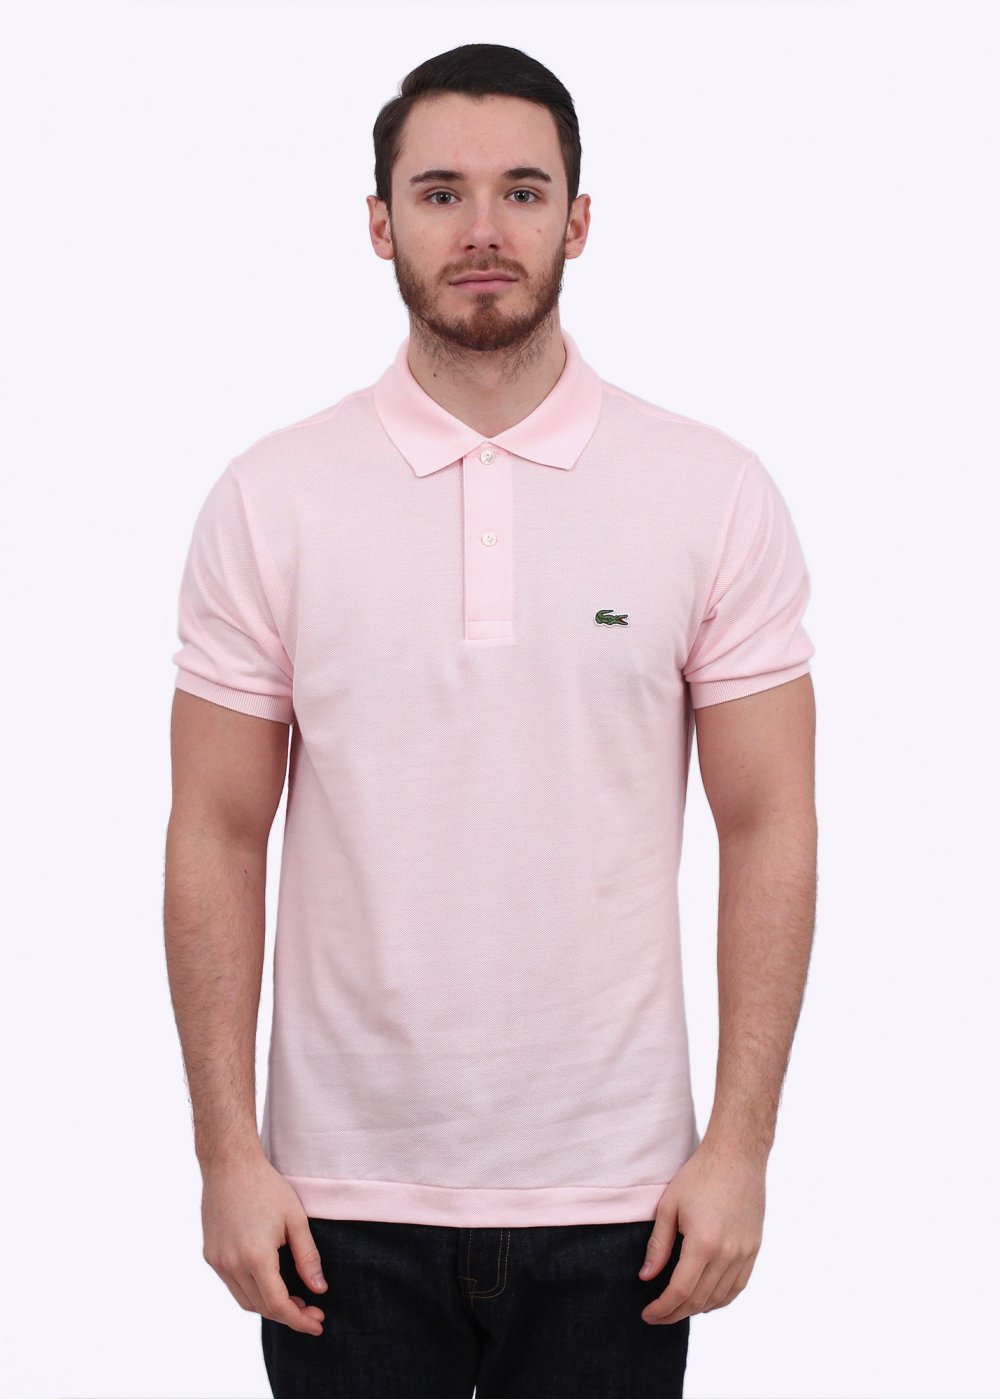 Lacoste Short Sleeve Logo Polo Shirt - Light Pink a746b81fa2